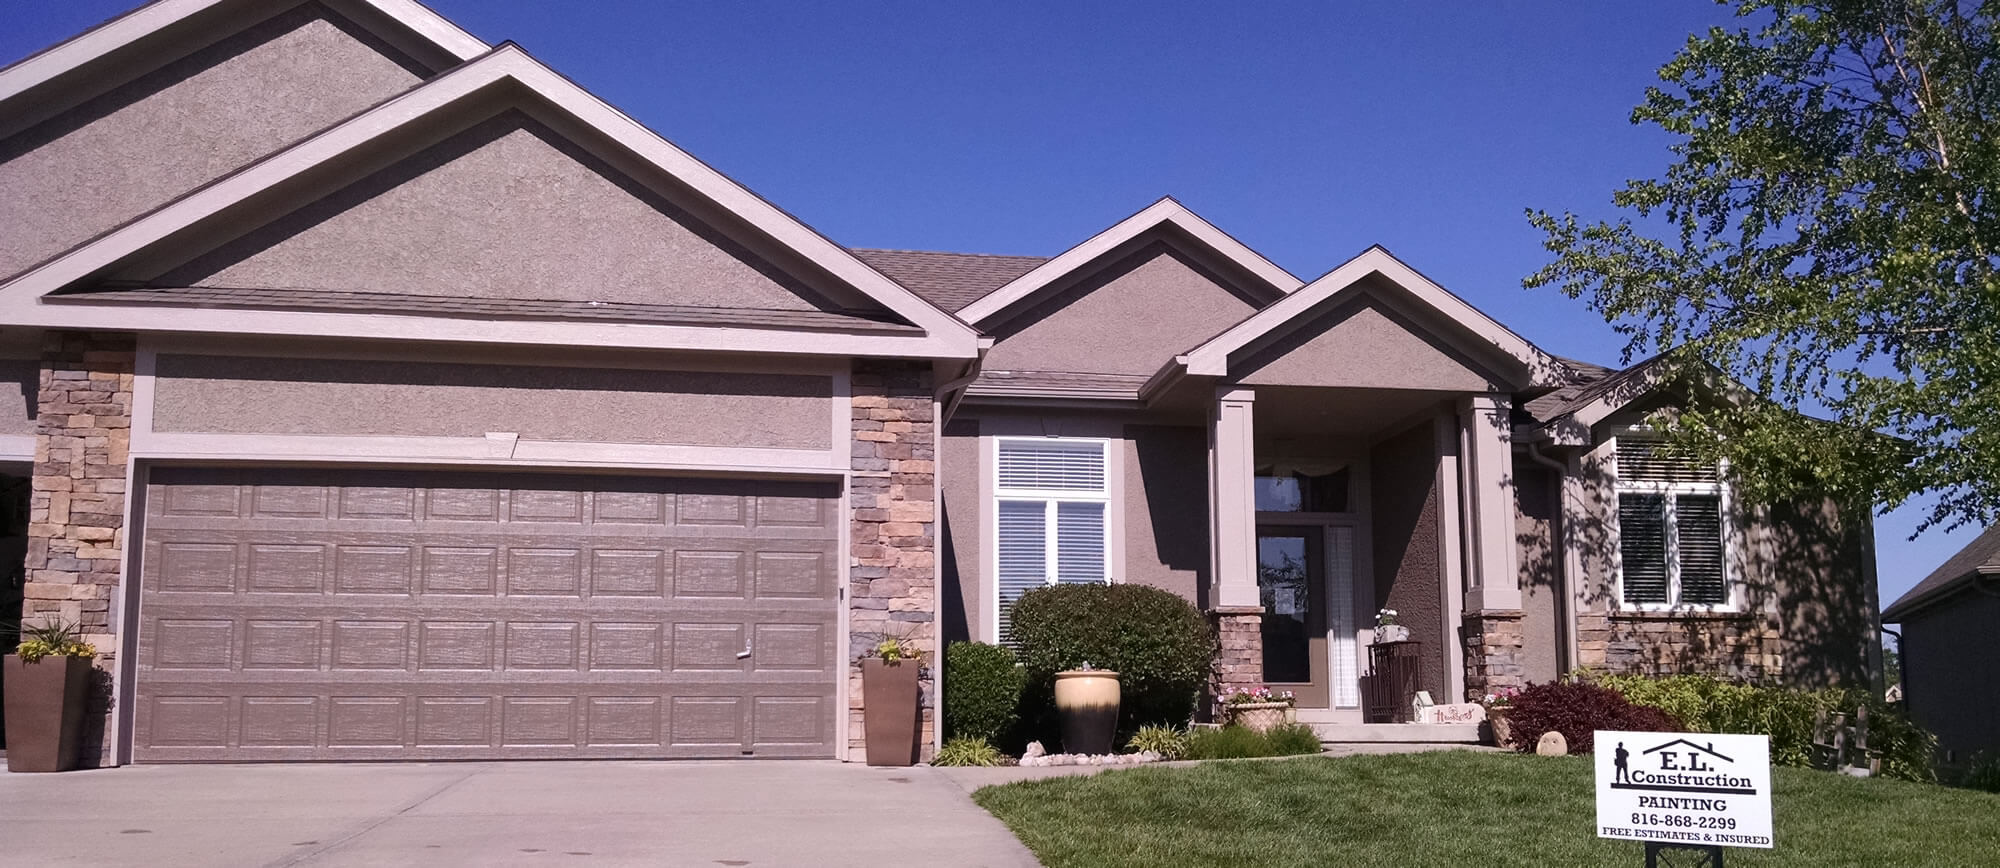 Exterior Painting Kansas City Northland